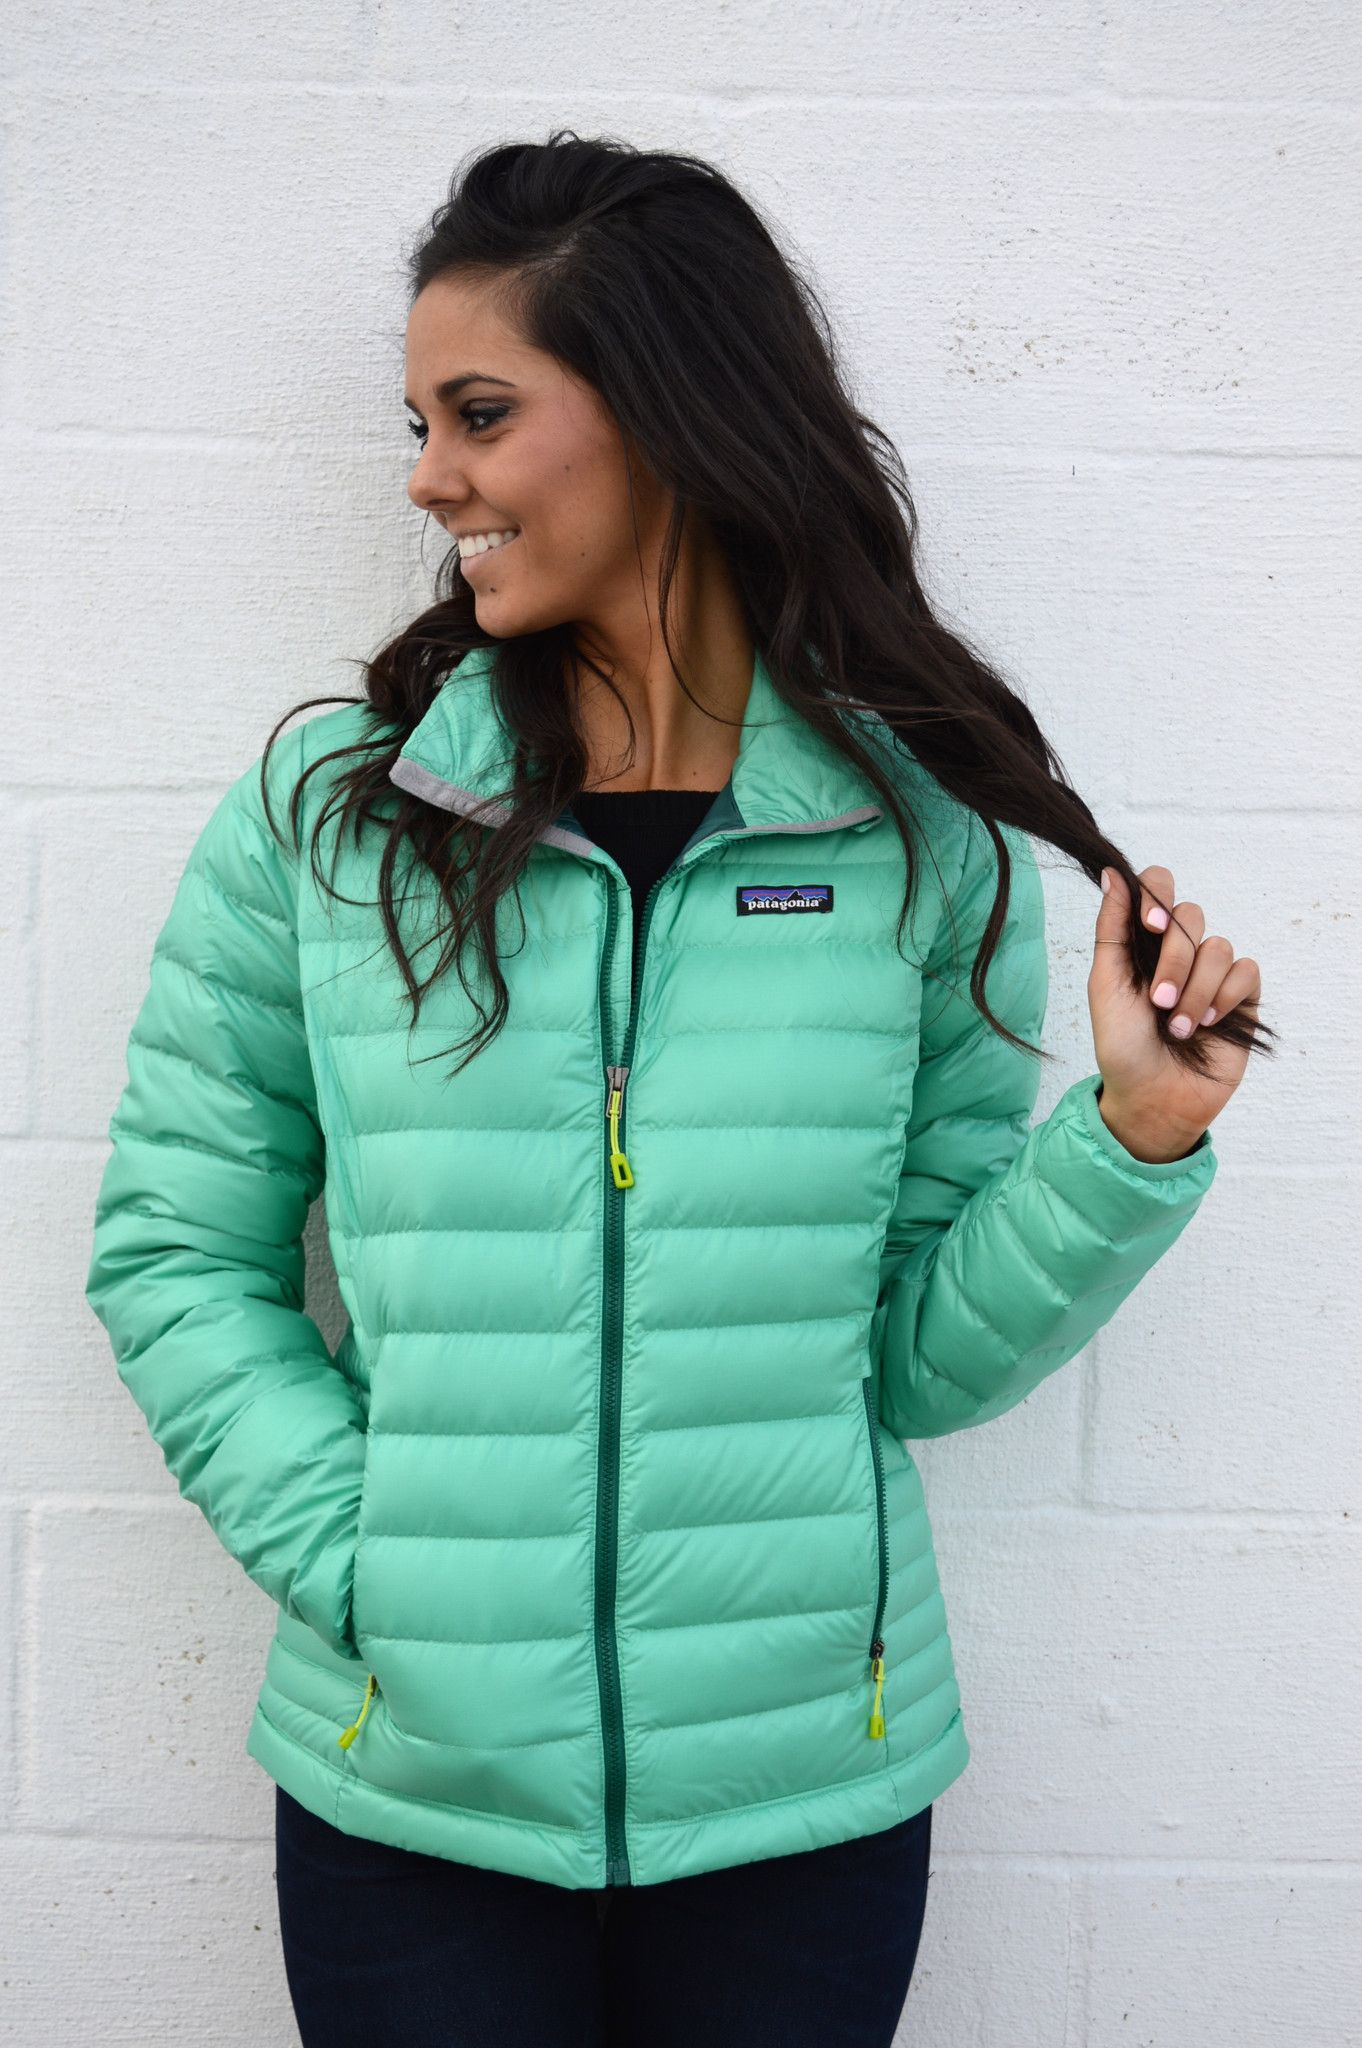 Patagonia Women S Down Sweater Jacket Aqua Stone From